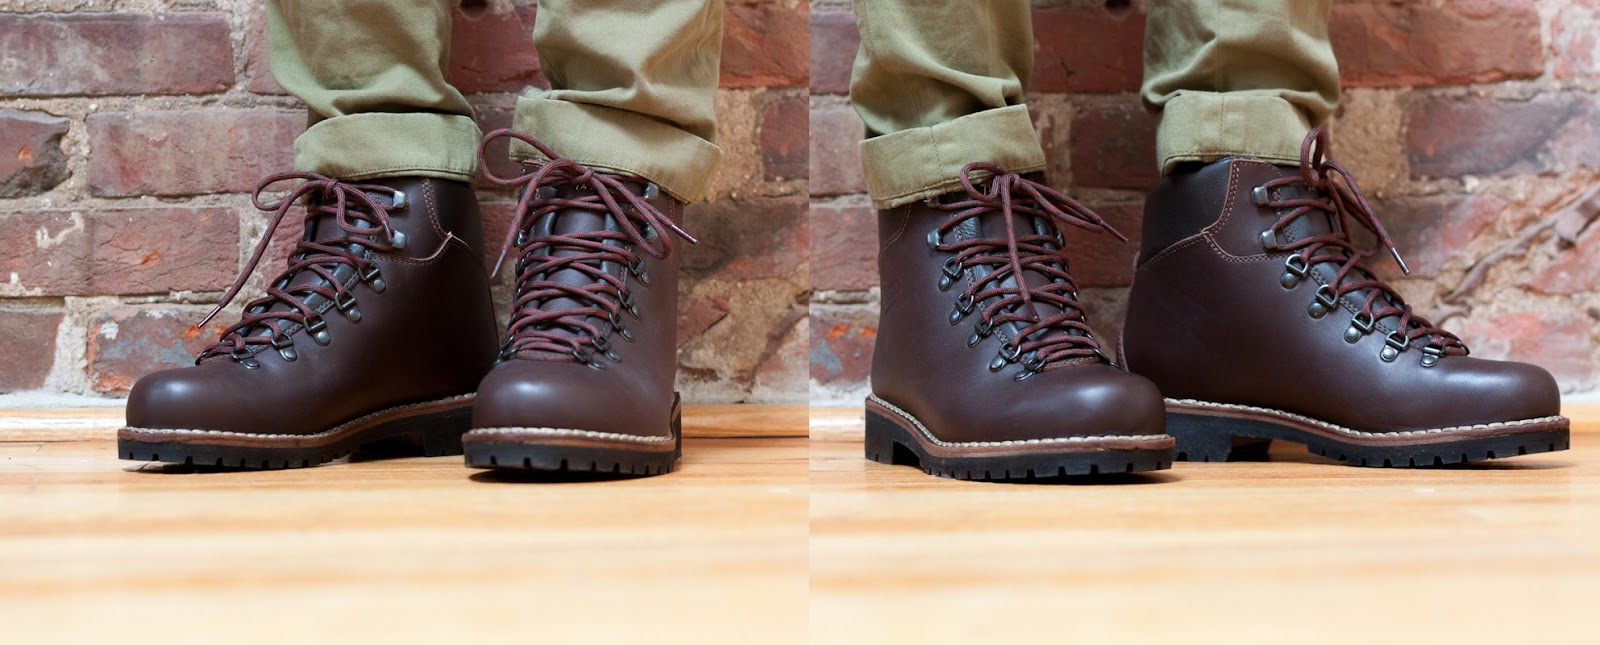 7a04c59bb20 First Impressions: Alico Tahoe boots